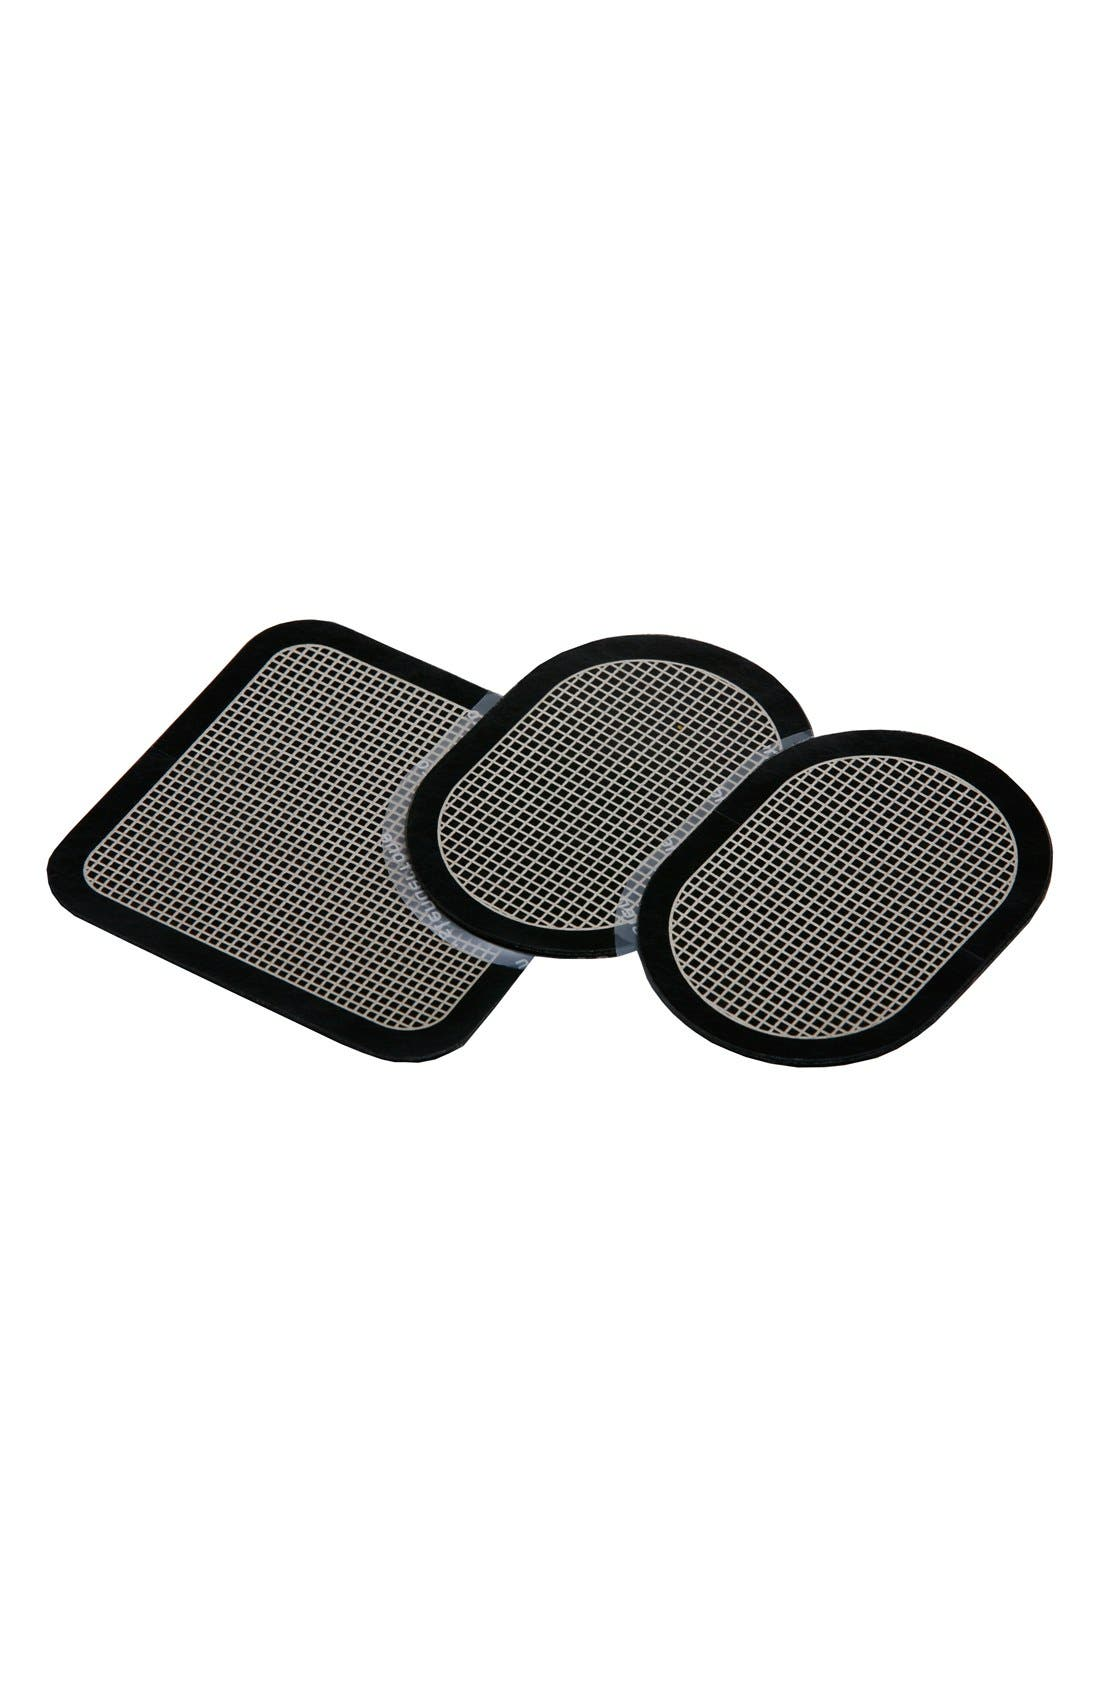 bio-medical research 'Slendertone' Replacement Abdominal Toning Gel Pads